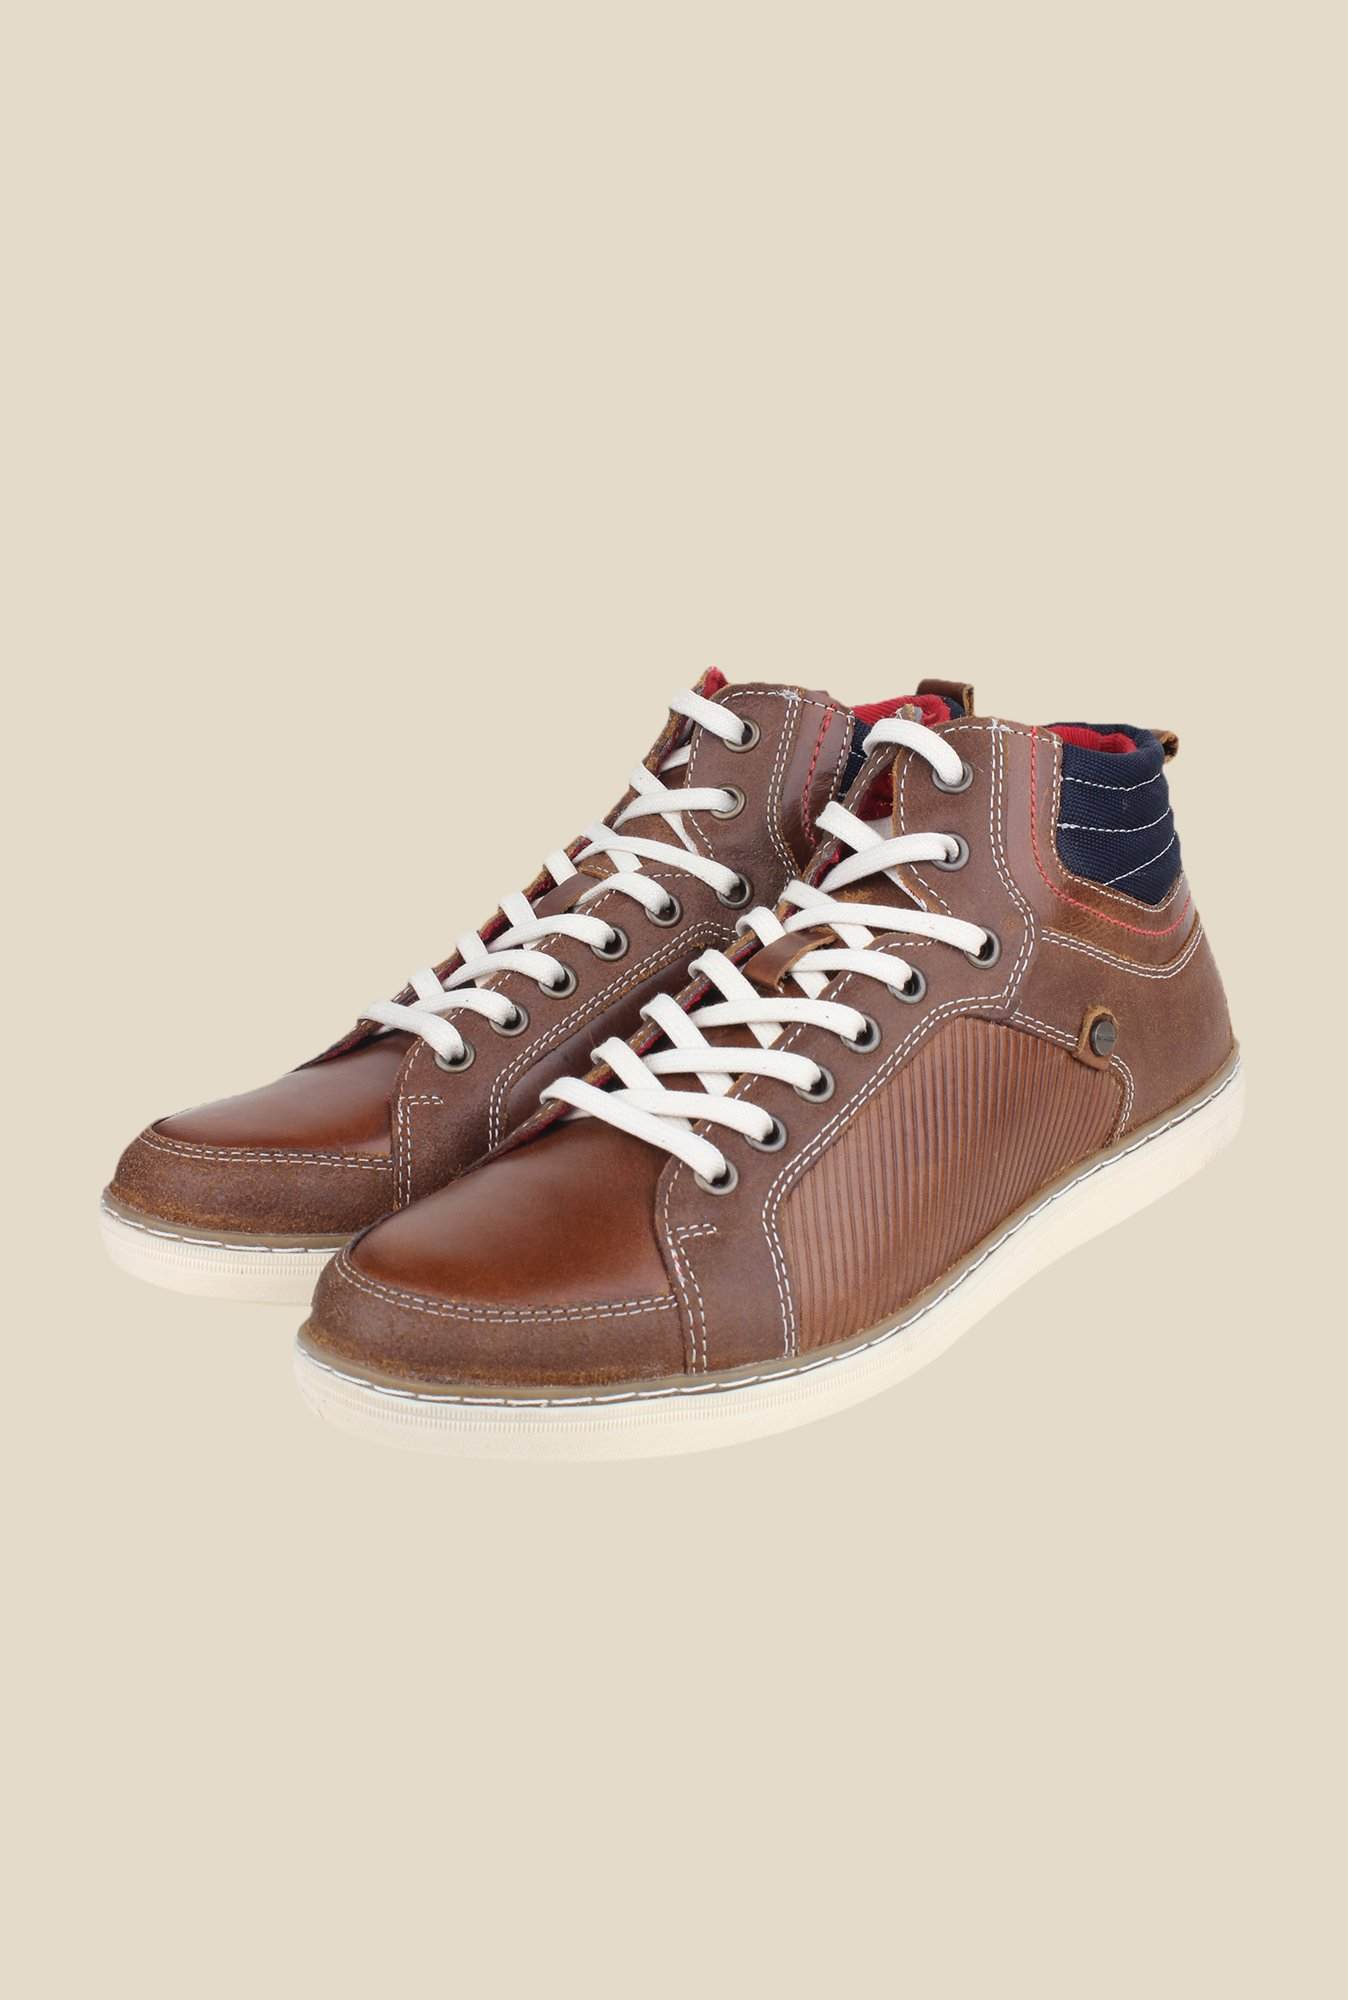 Red Tape Brown Sneakers